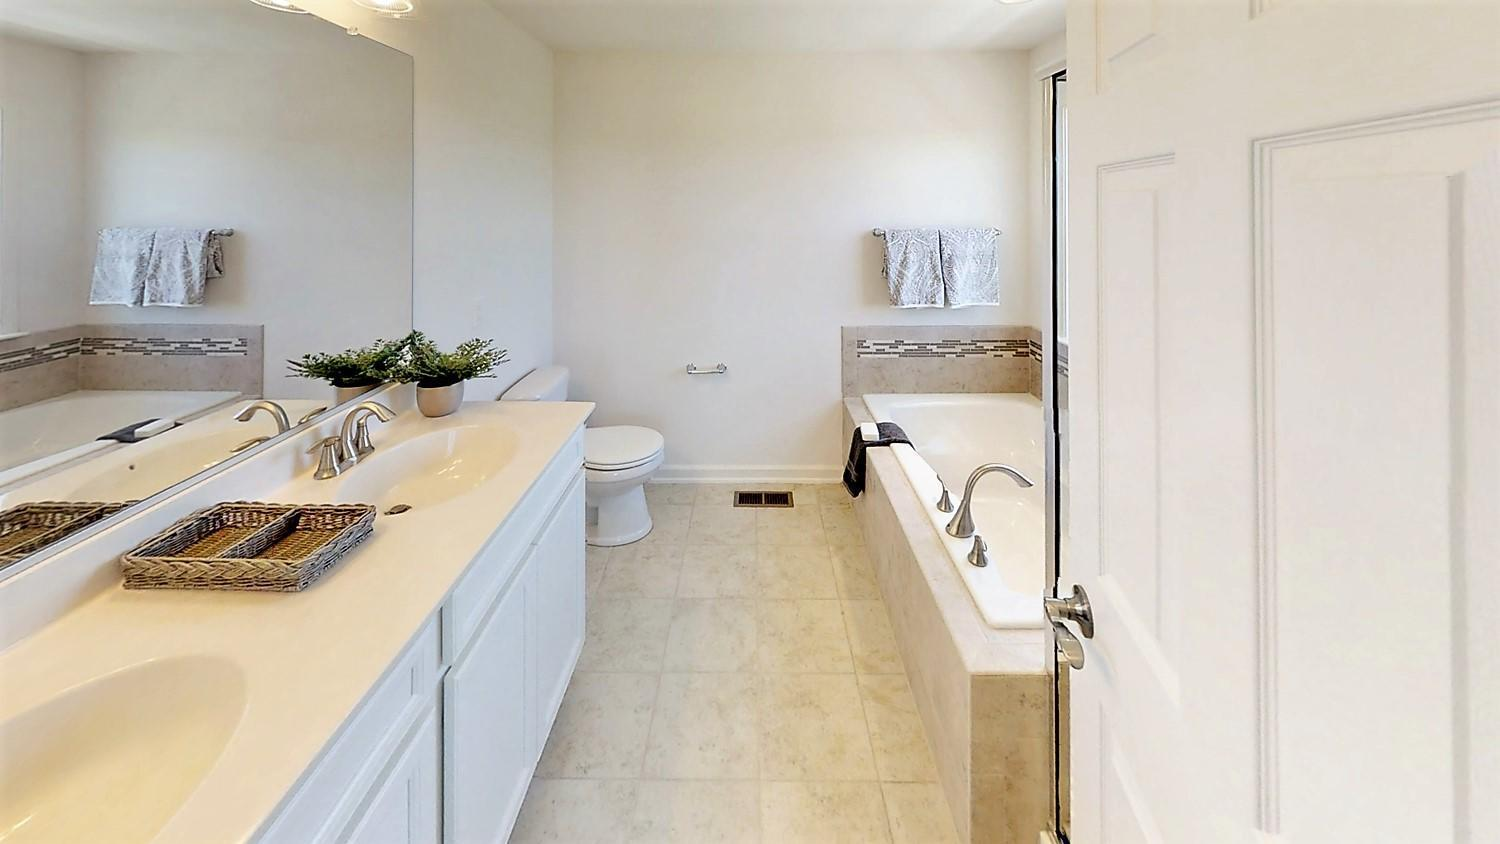 Bathroom featured in the Sanctuary By Lacrosse Homes in Eastern Shore, MD